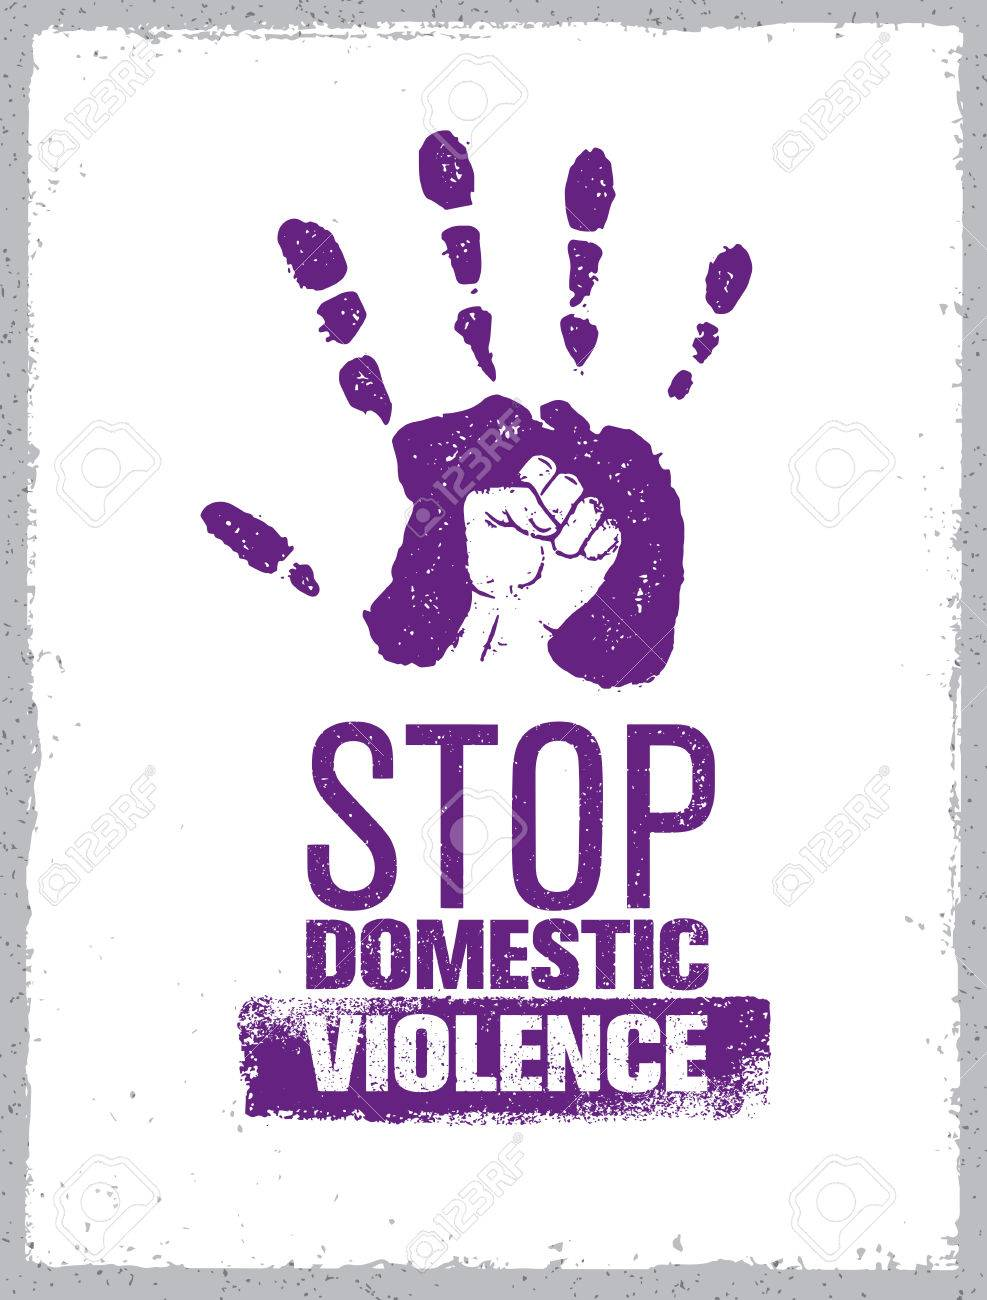 Stop Domestic Violence Stamp. Creative Social Vector Design Element Concept. Hand Print With Fist Inside Grunge Icon. - 72166310